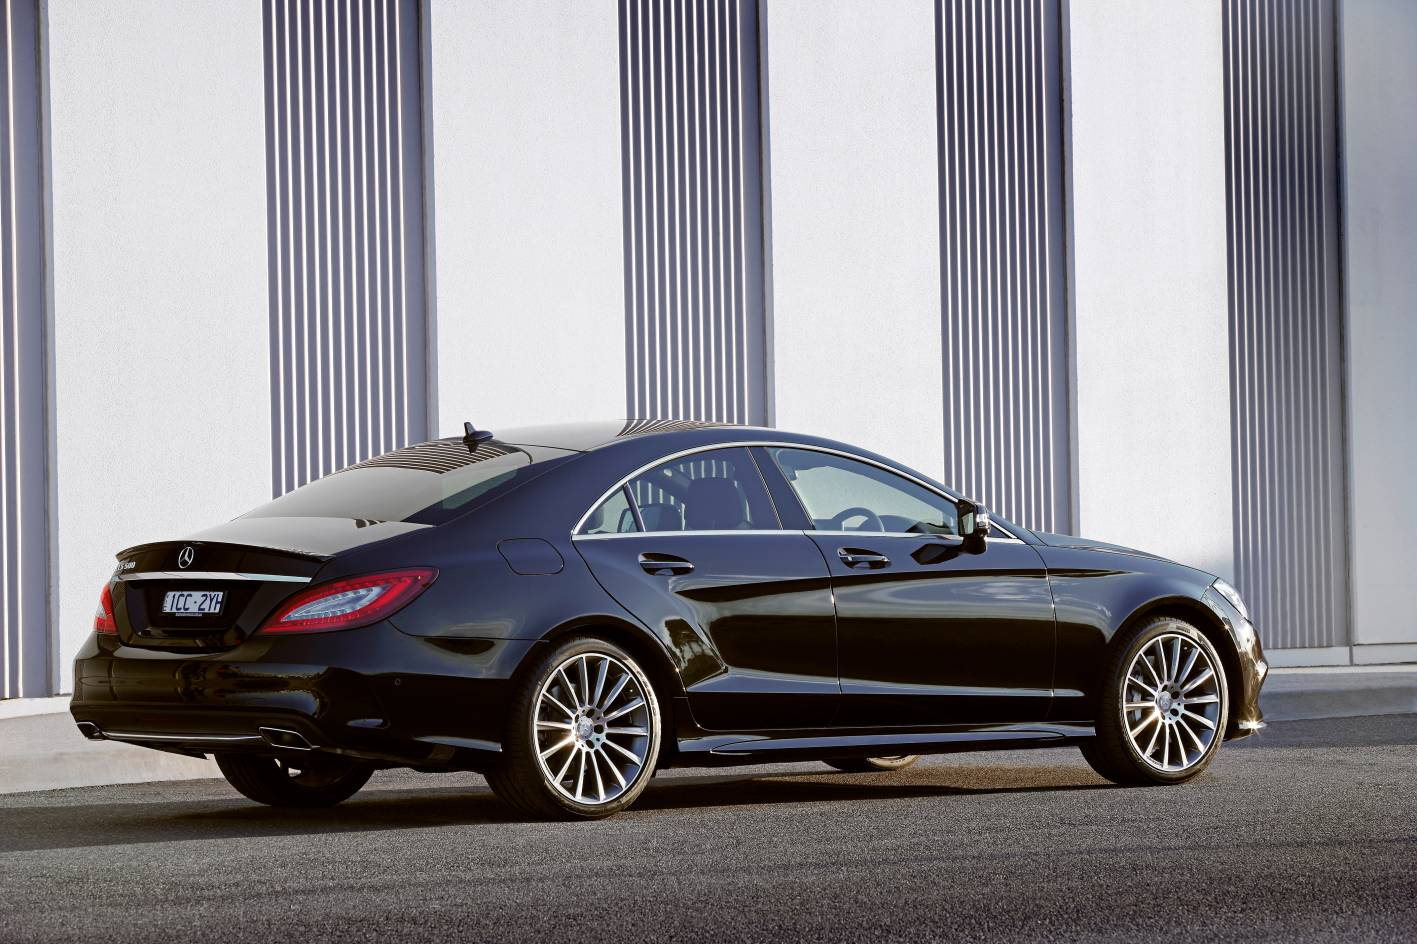 Mercedes-Benz revises CLS Coupe and CLS Shooting Brake for ... Traffic Cone On Road